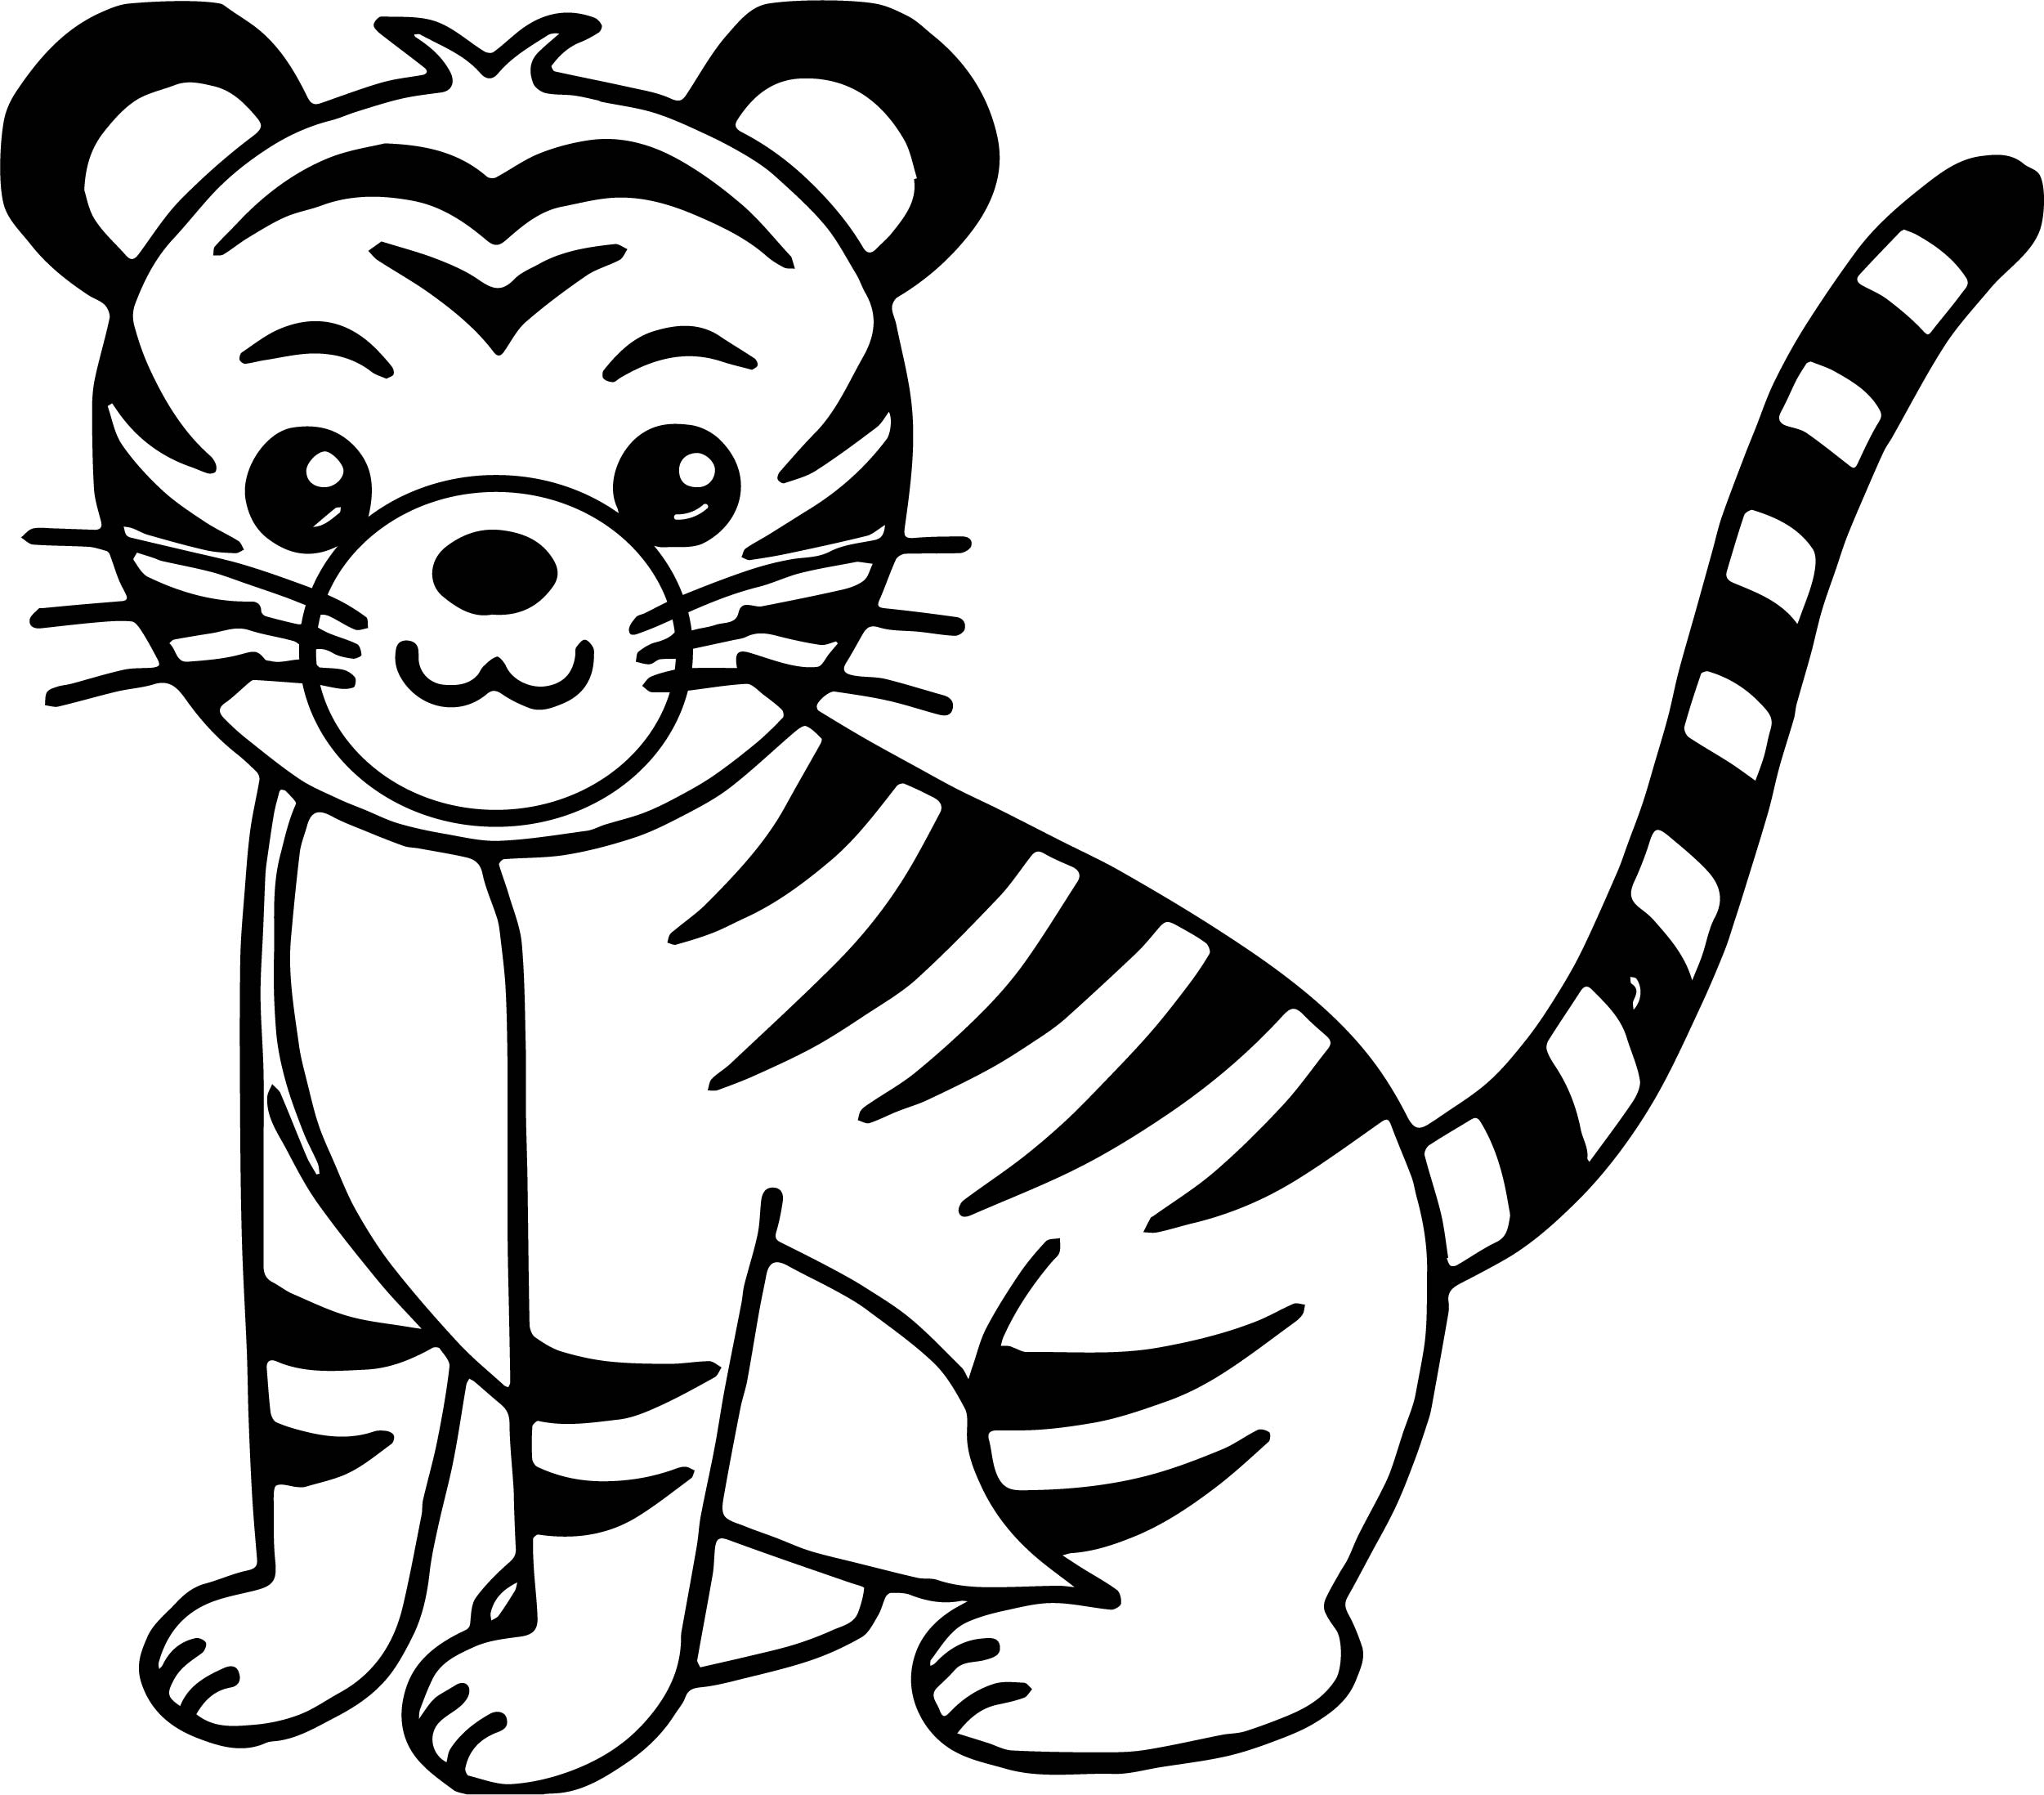 tiger images for colouring tigers free to color for kids tigers kids coloring pages tiger colouring images for